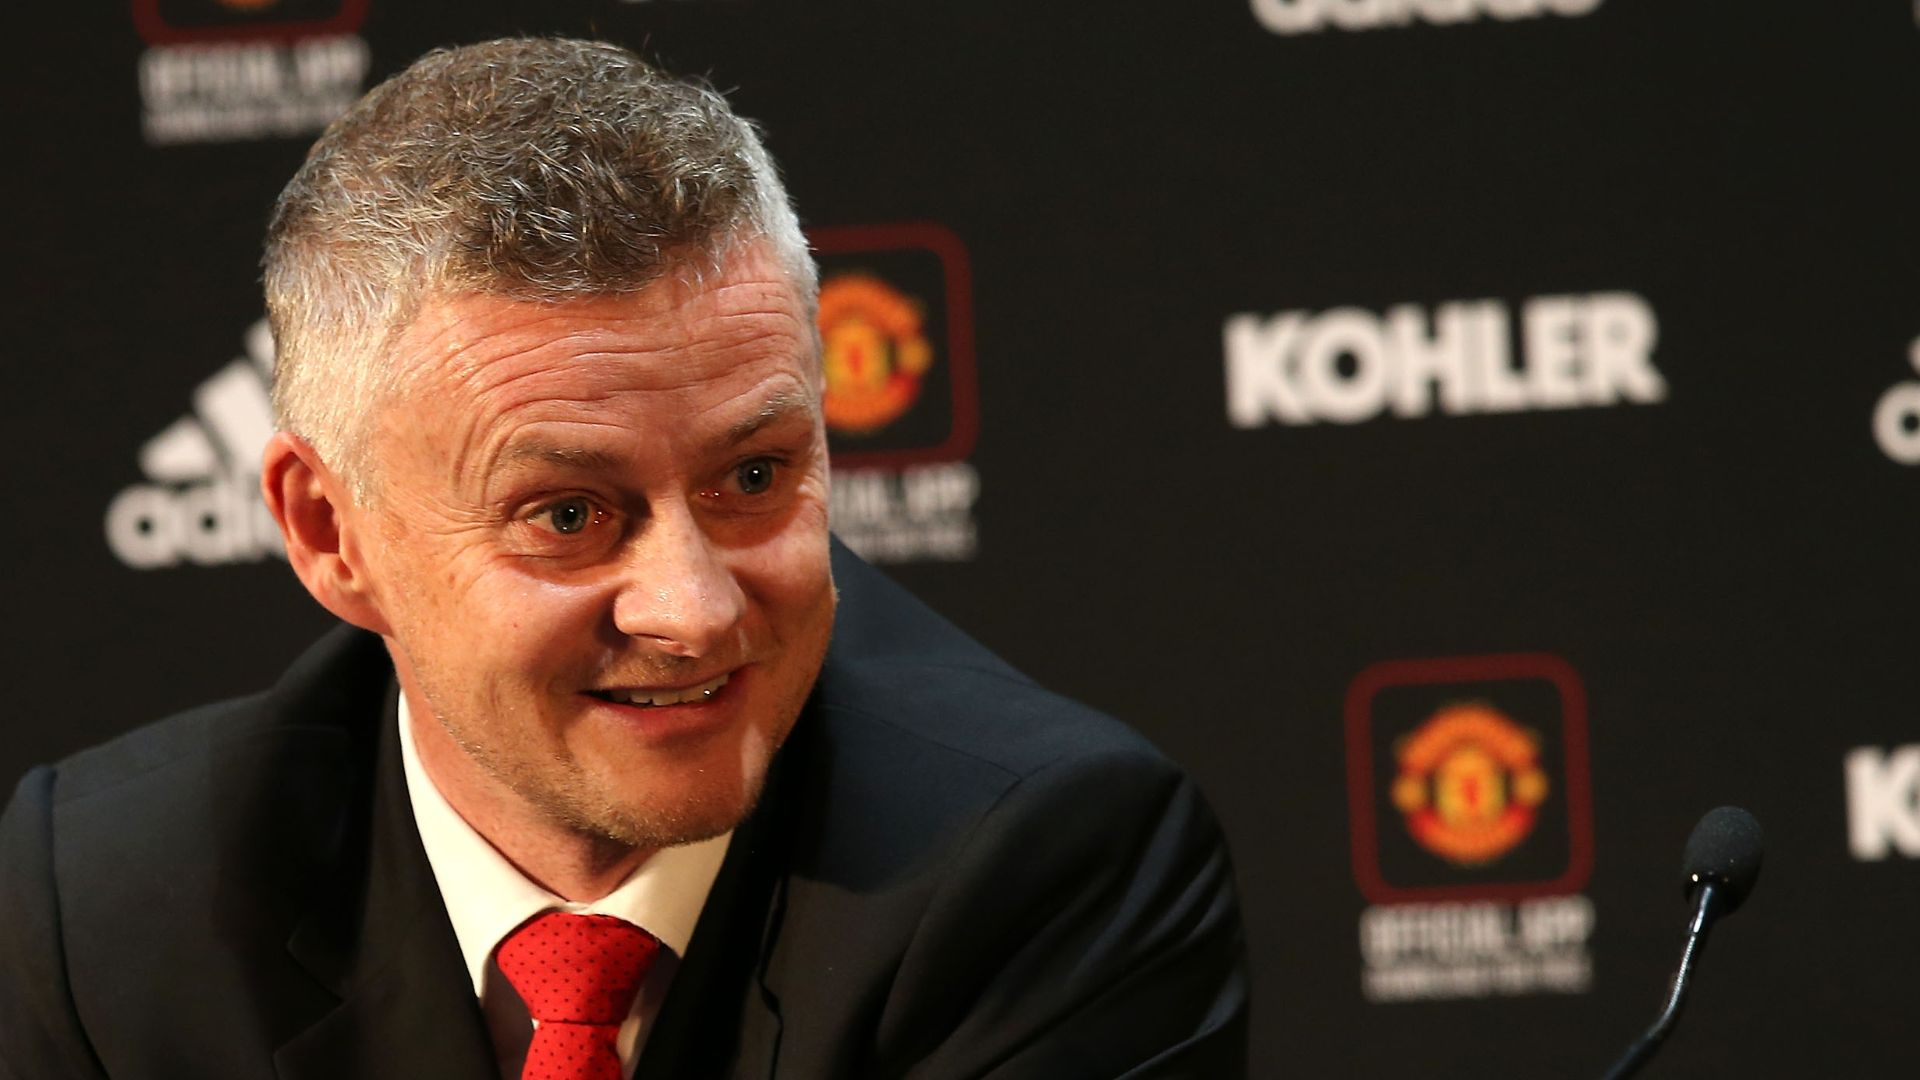 Solskjaer's 'cultural reset' convinced Man United to name him permanent boss 5